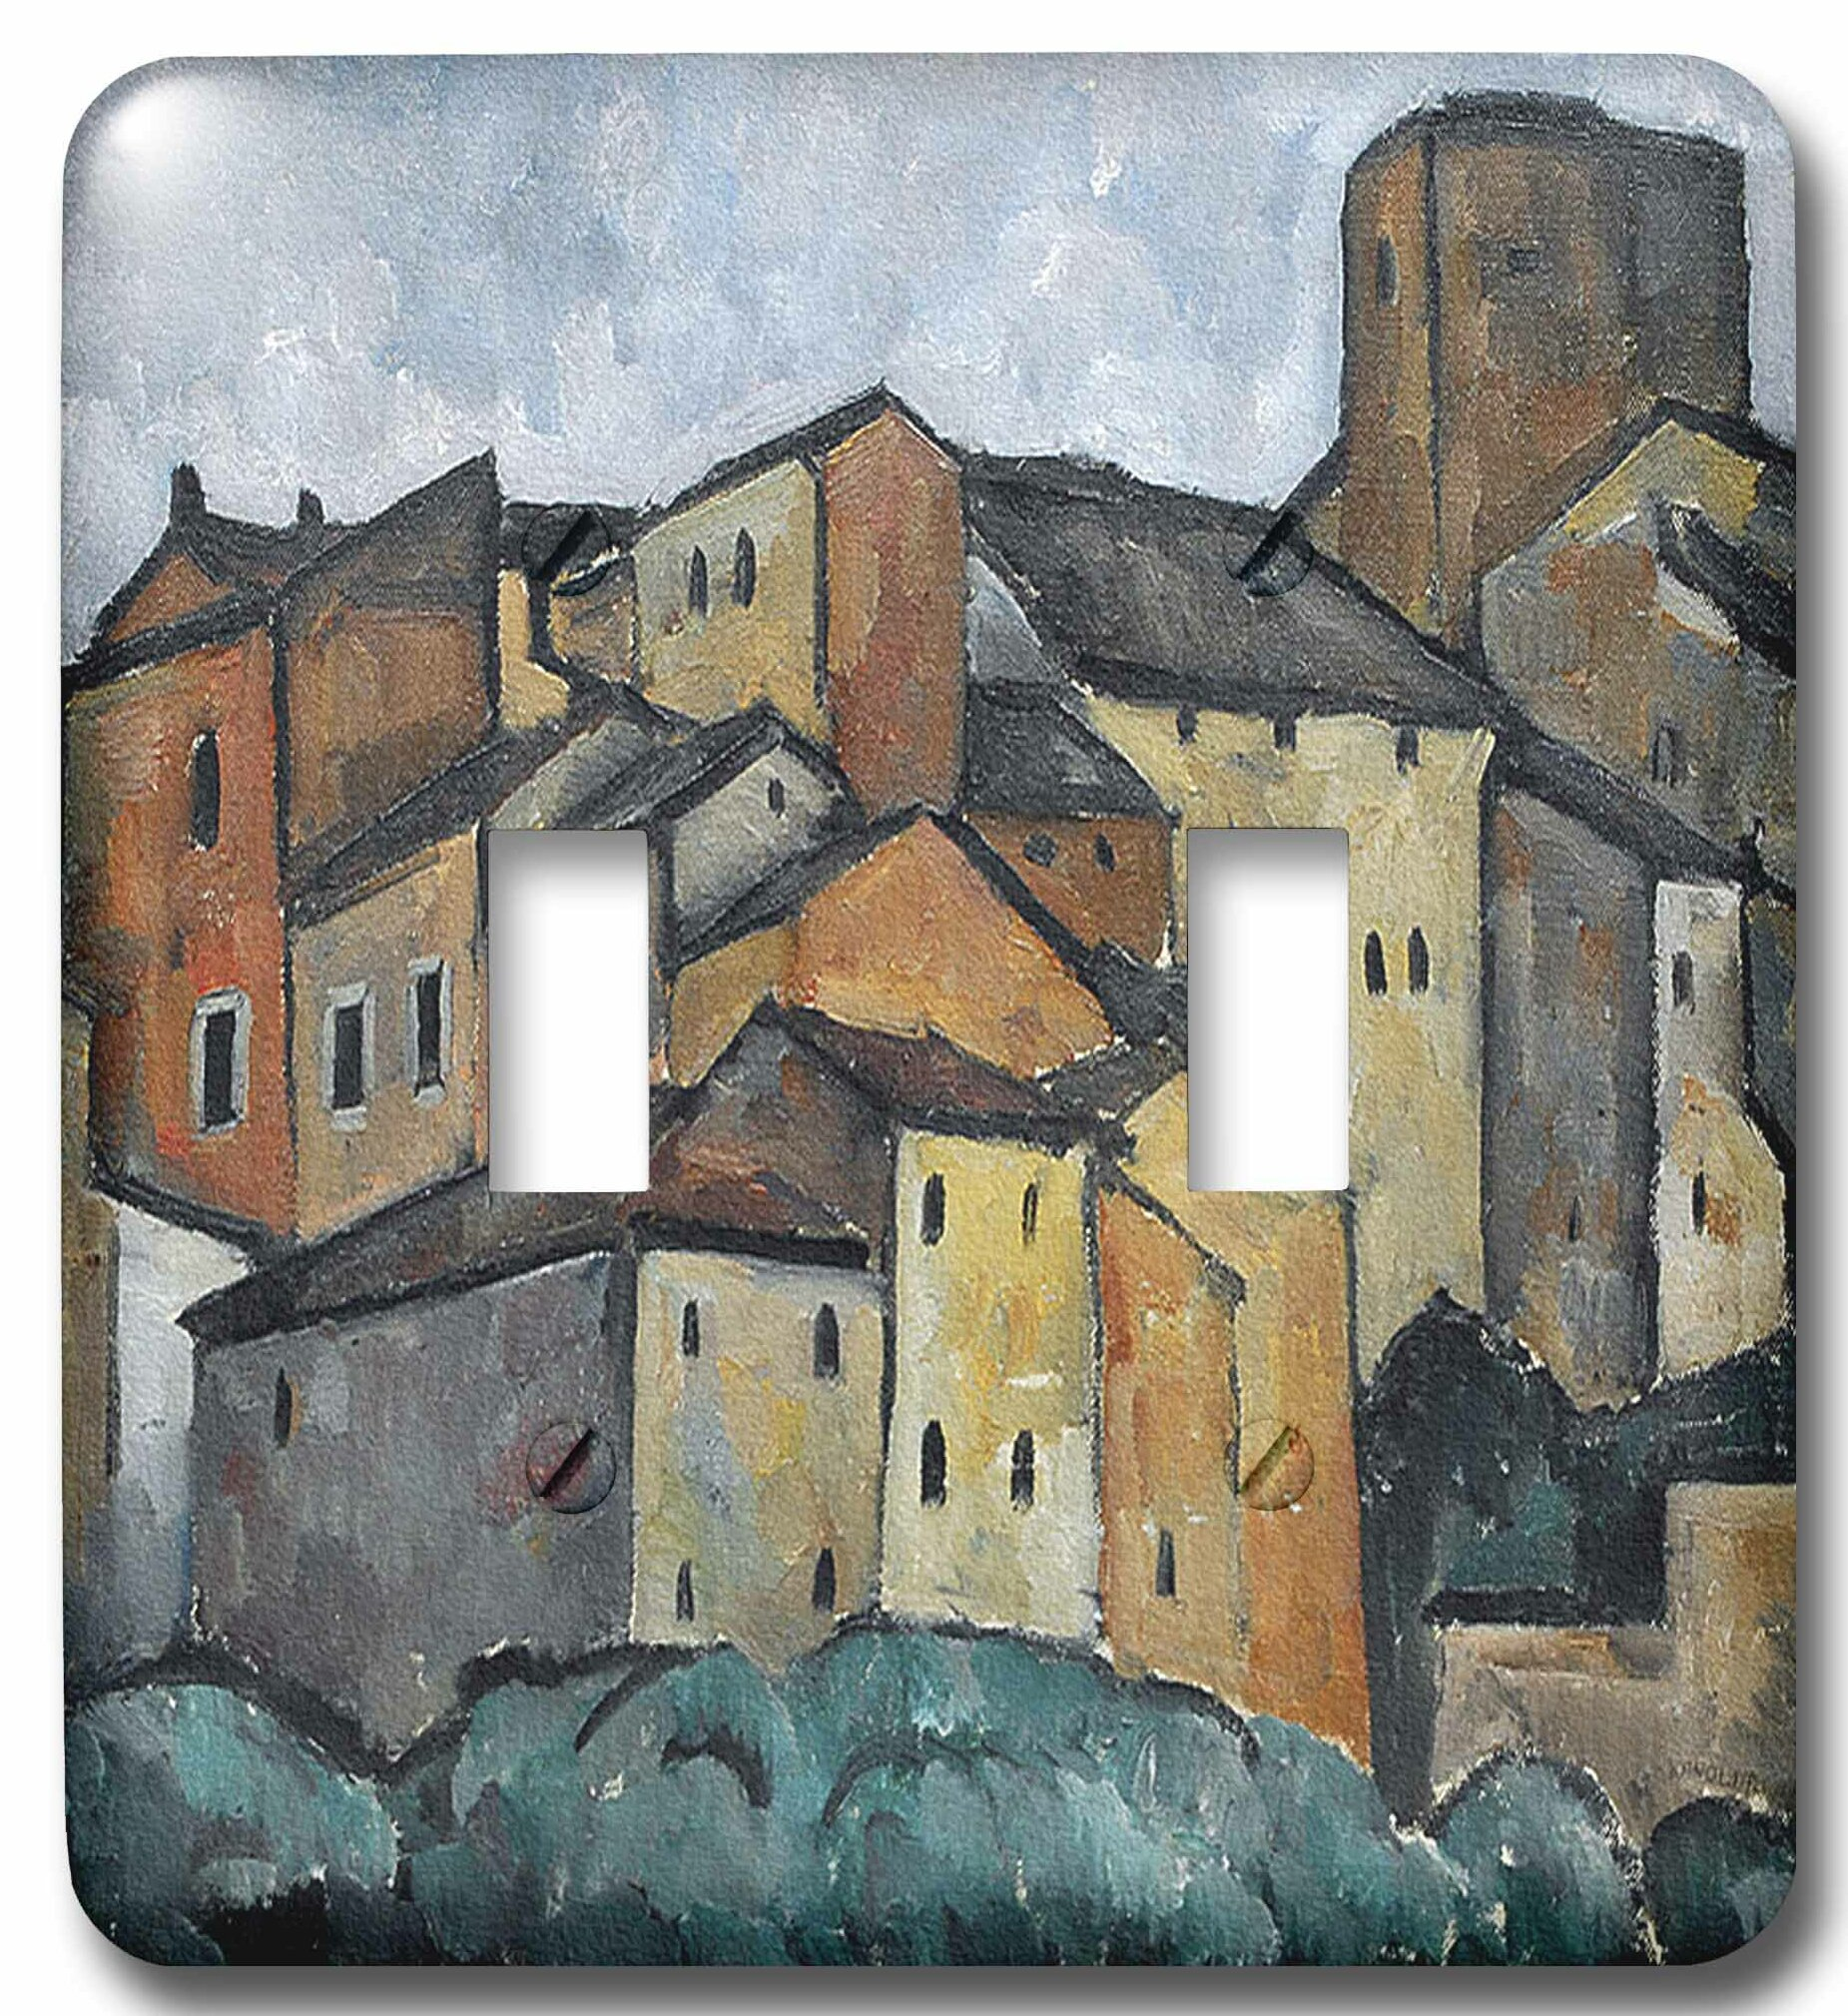 3drose 1913 San Gimignano Italy Painting By Alexander Kanoldt 2 Gang Toggle Light Switch Wall Plate Wayfair